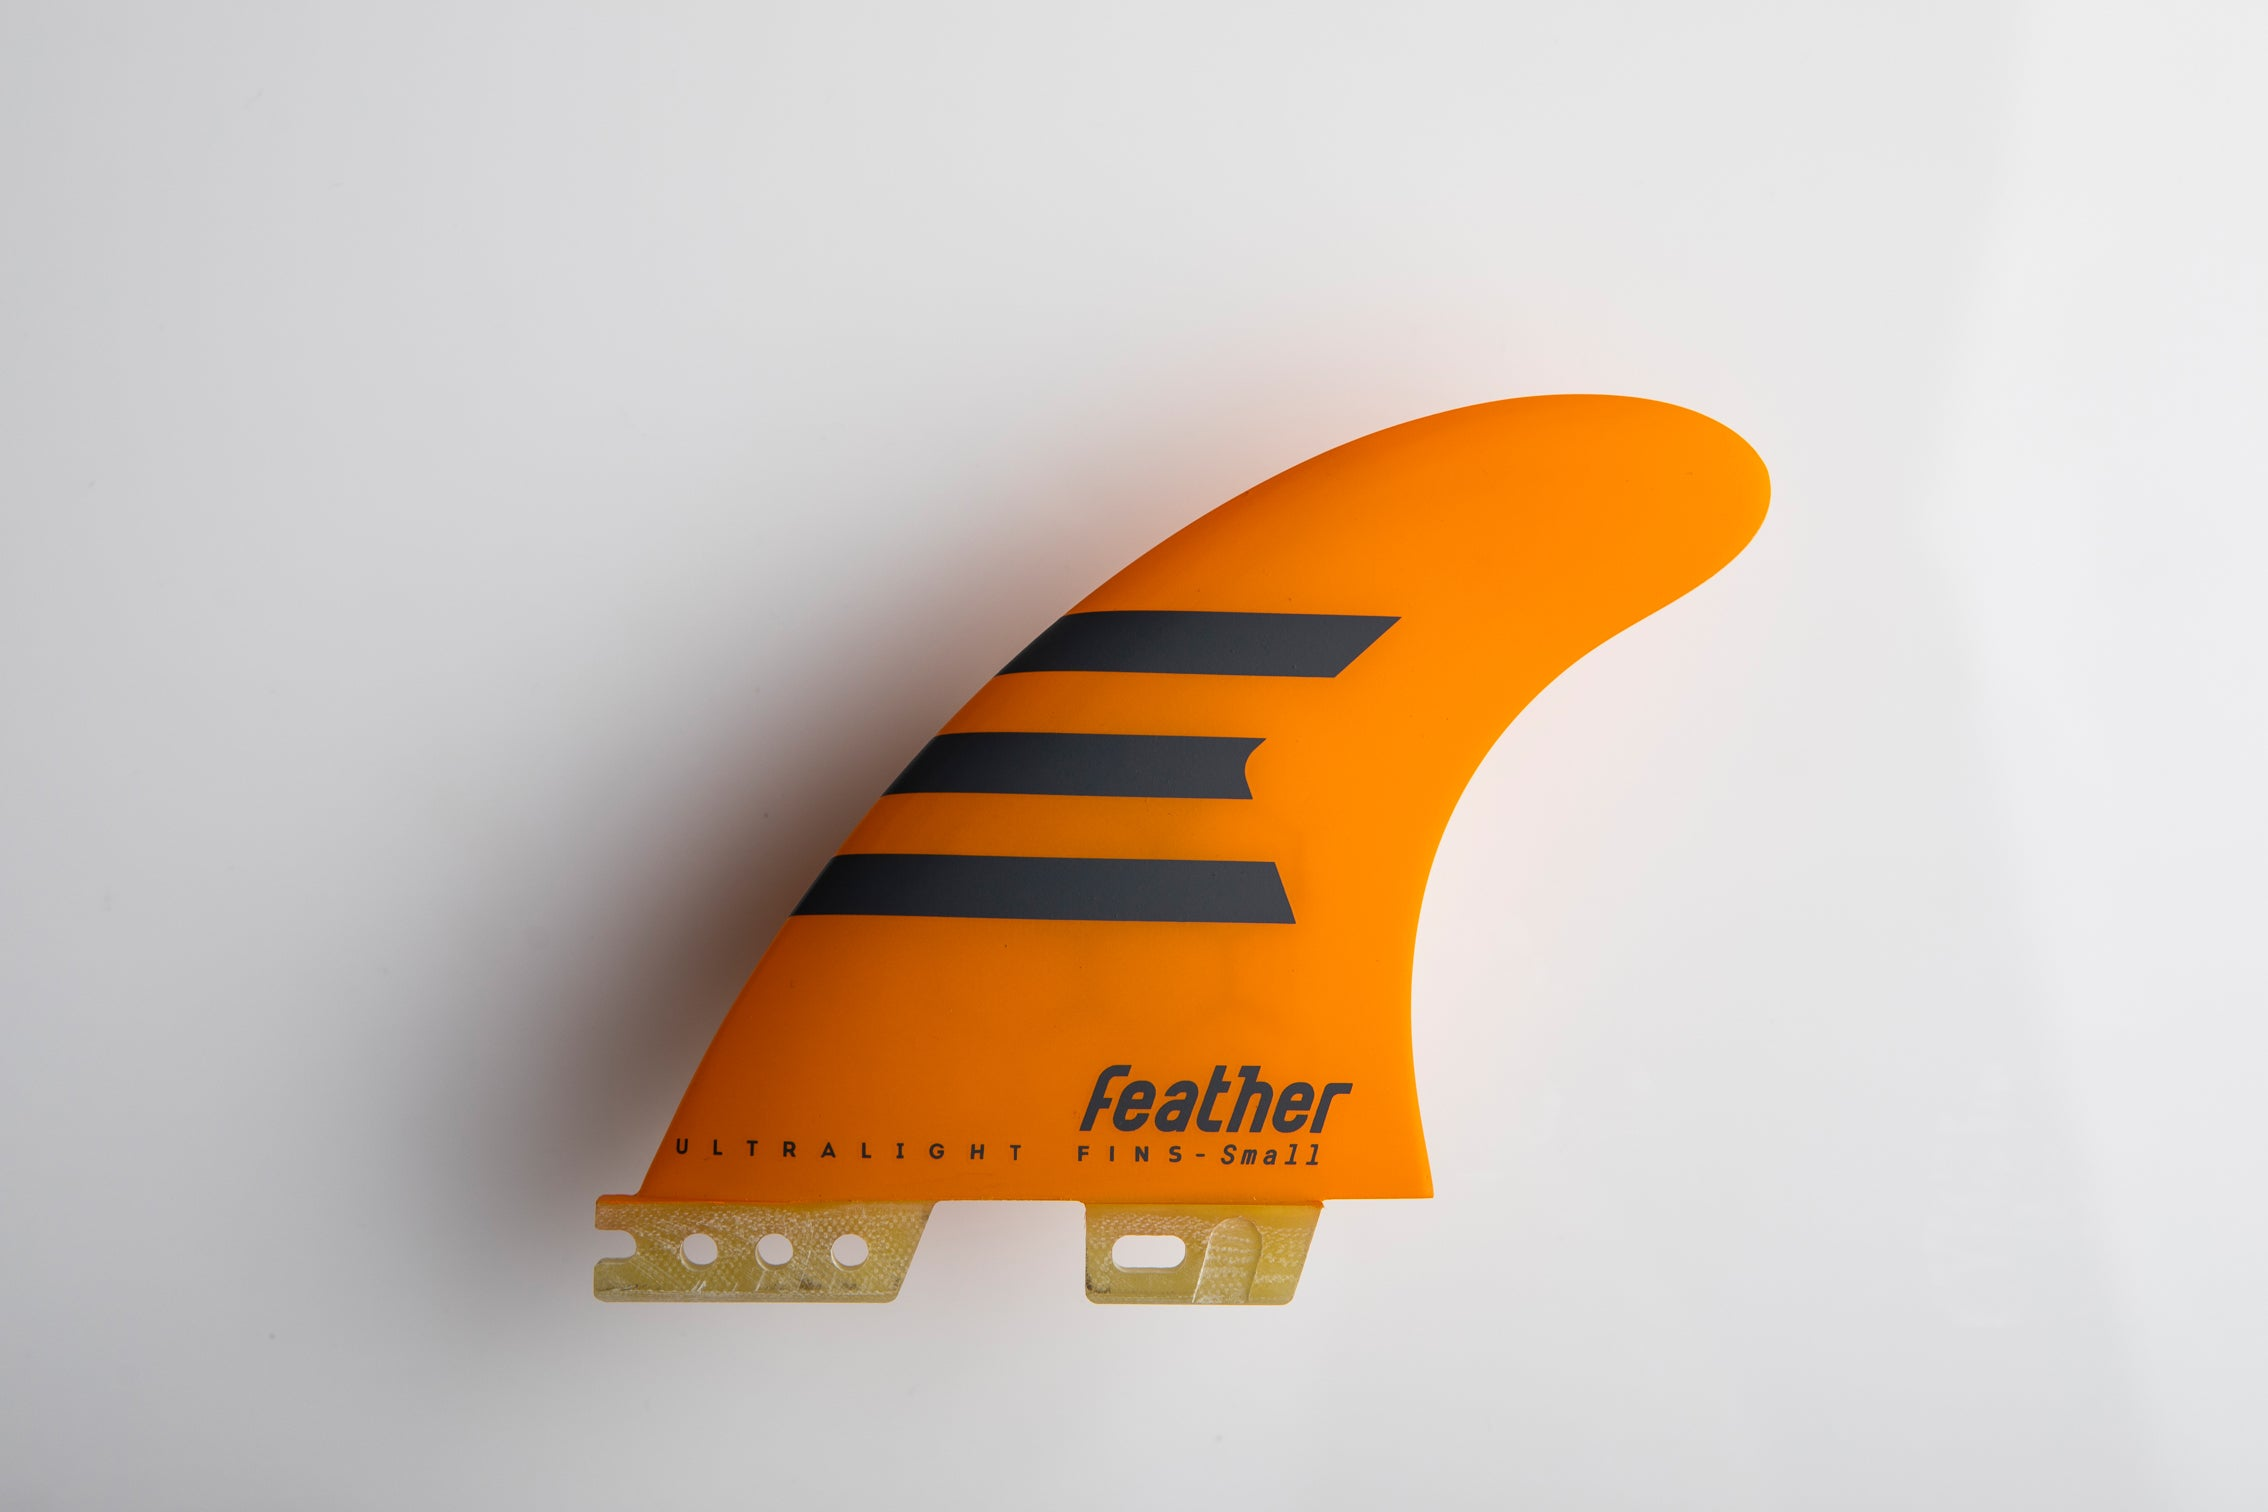 ULTRALIGHT EPOXY HC ORANGE/GREY. CLICK TAB